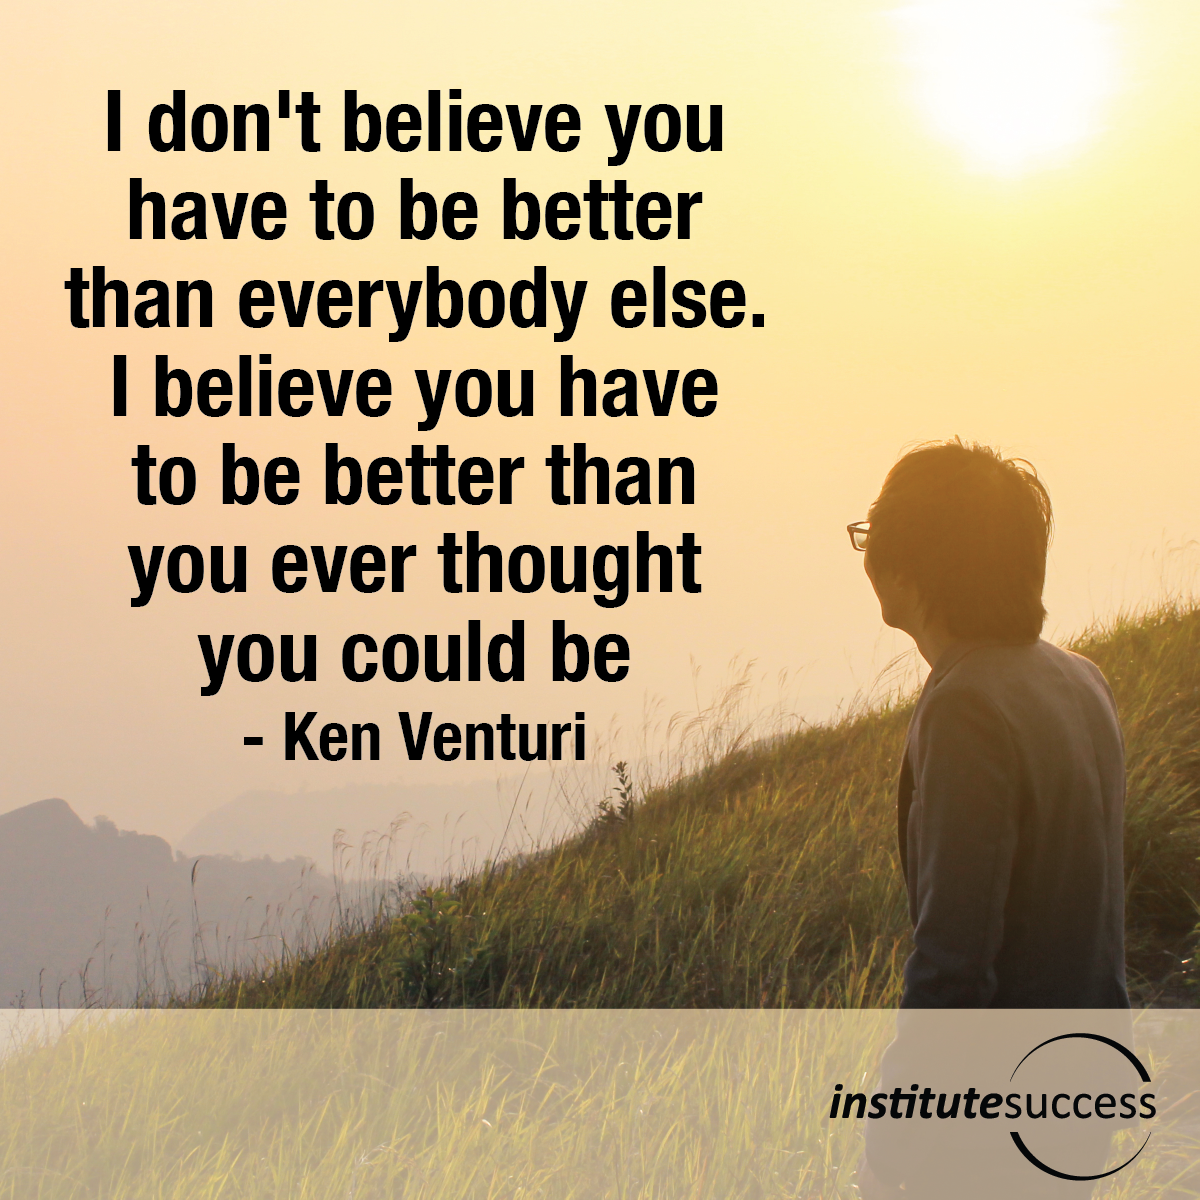 I don't believe you have to be better than everybody else. I believe you have to be better than you ever thought you could be – Ken Venturi